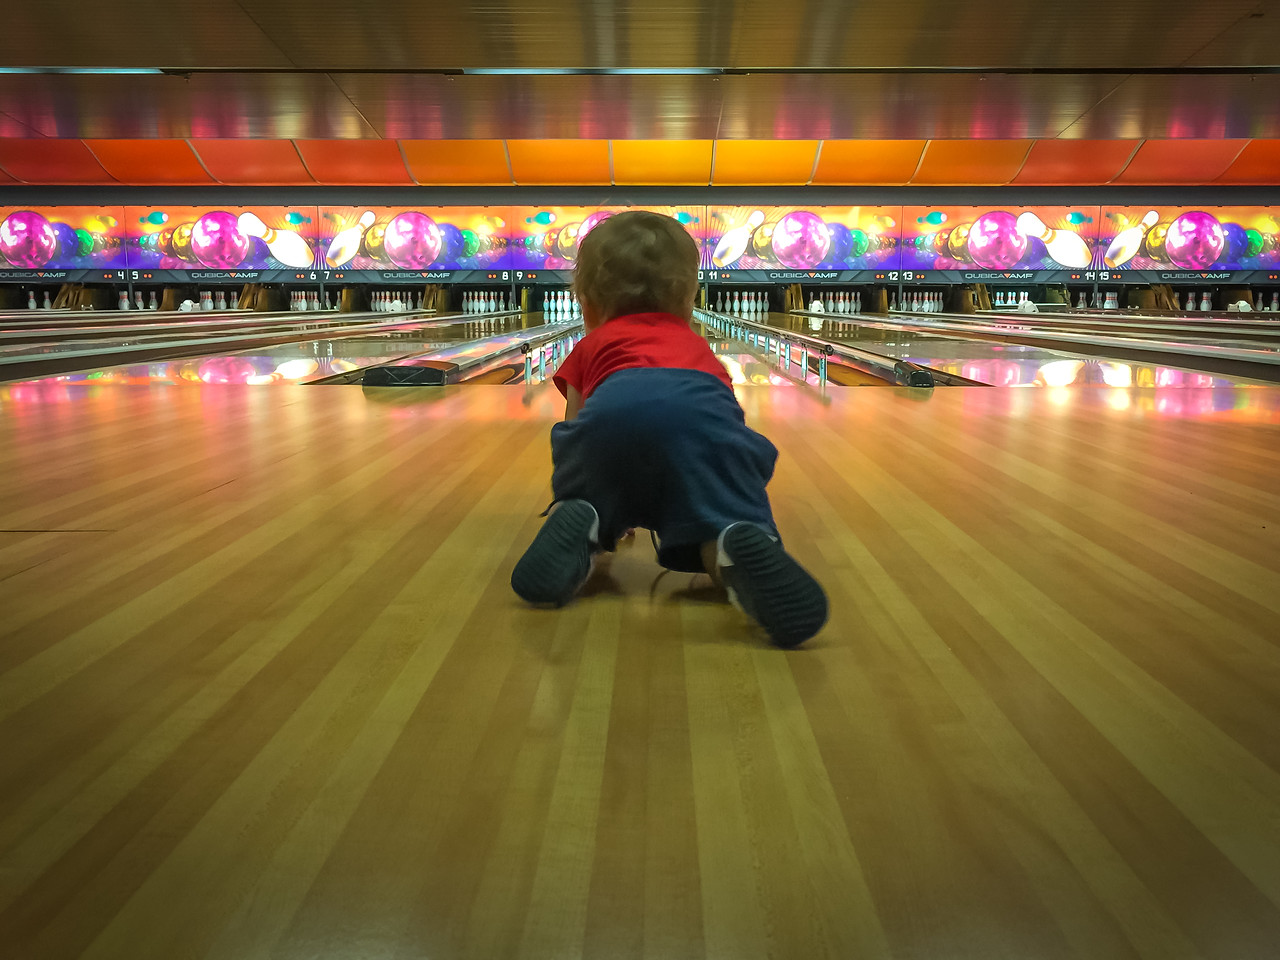 Bowling in Okinawa - August 17